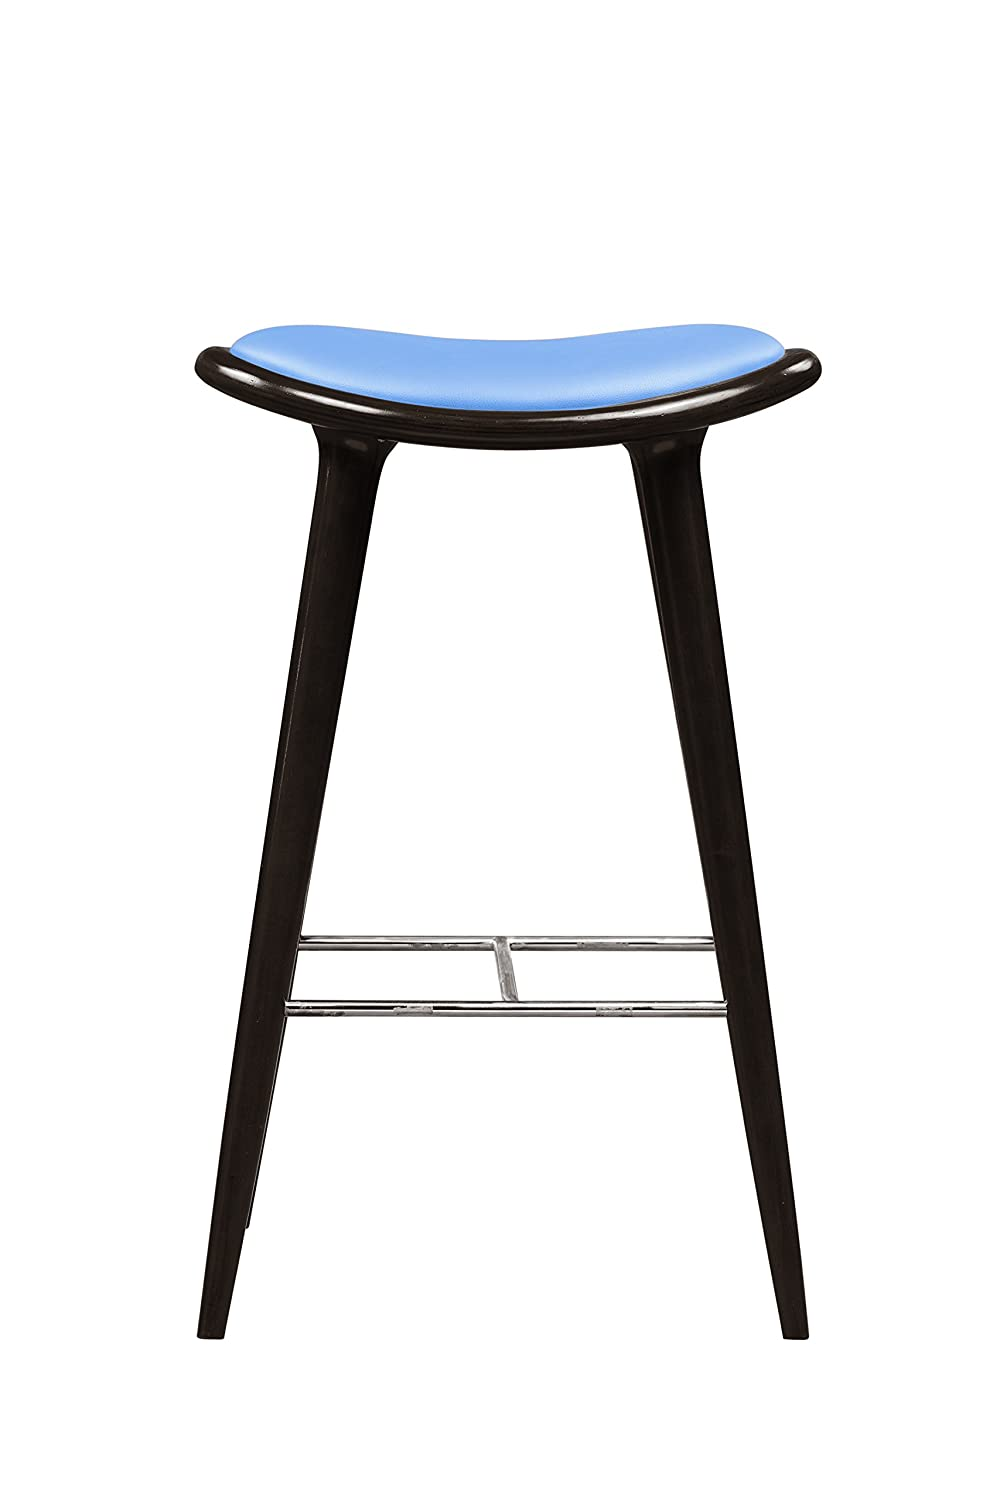 Boraam 57429 Lucio Stool, 29-Inch, 1-Pack, Blue